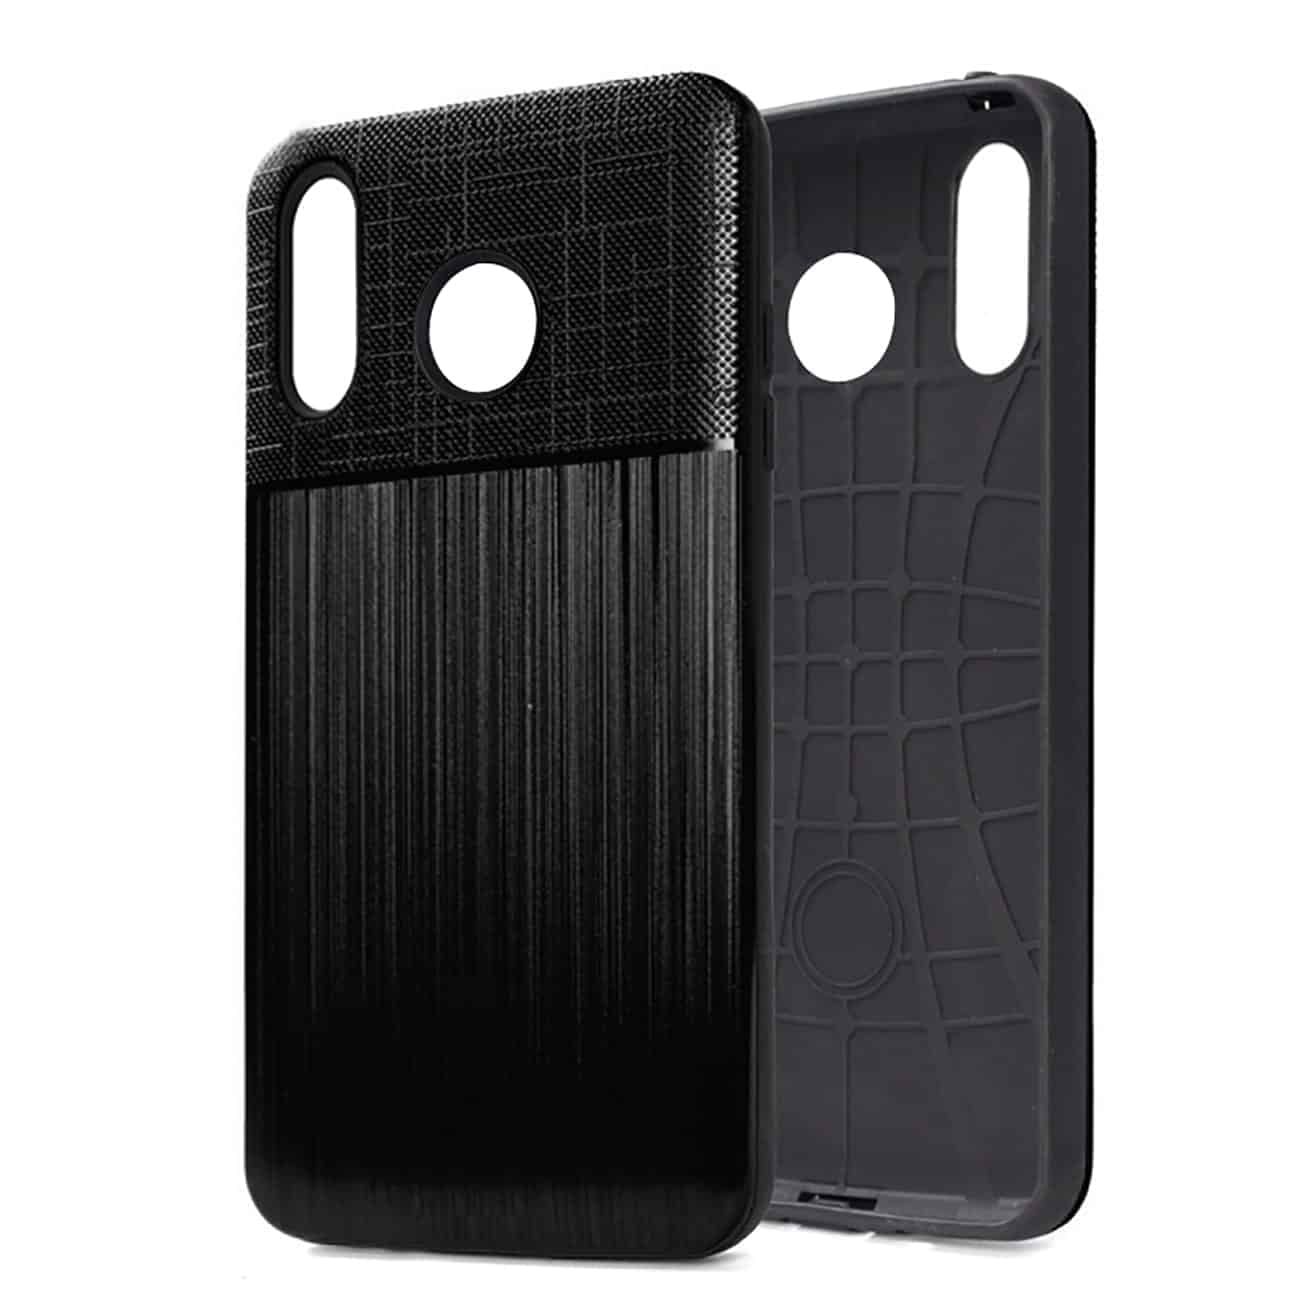 ISTIK SAMSUNG GALAXY A40S/M30 Lightweight Case In Black